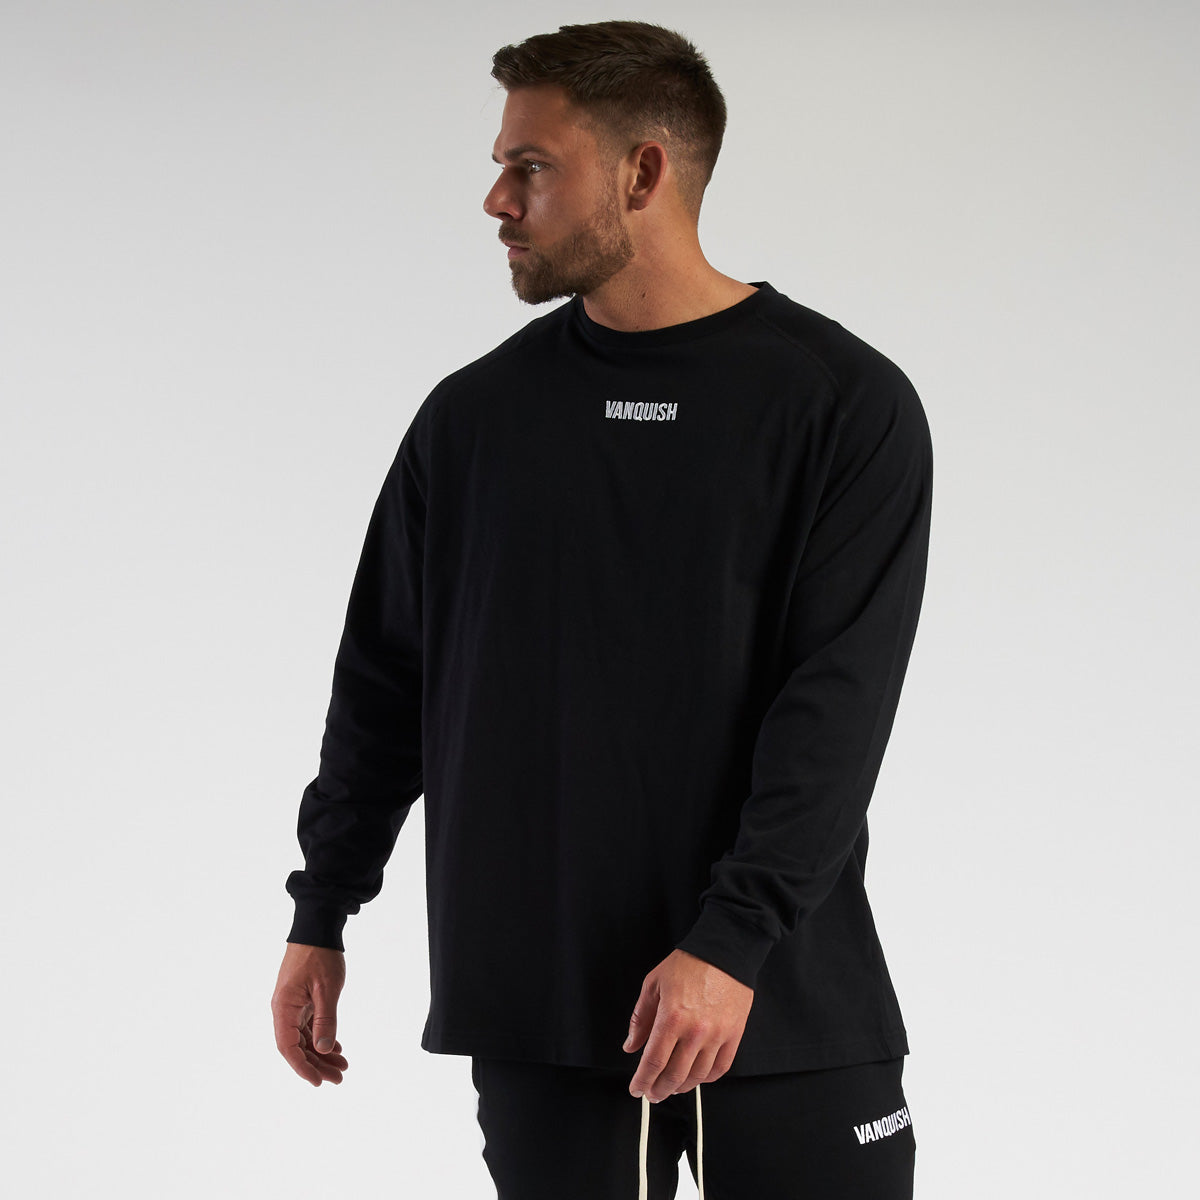 Vanquish Contrast Black Oversized Long Sleeve T Shirt